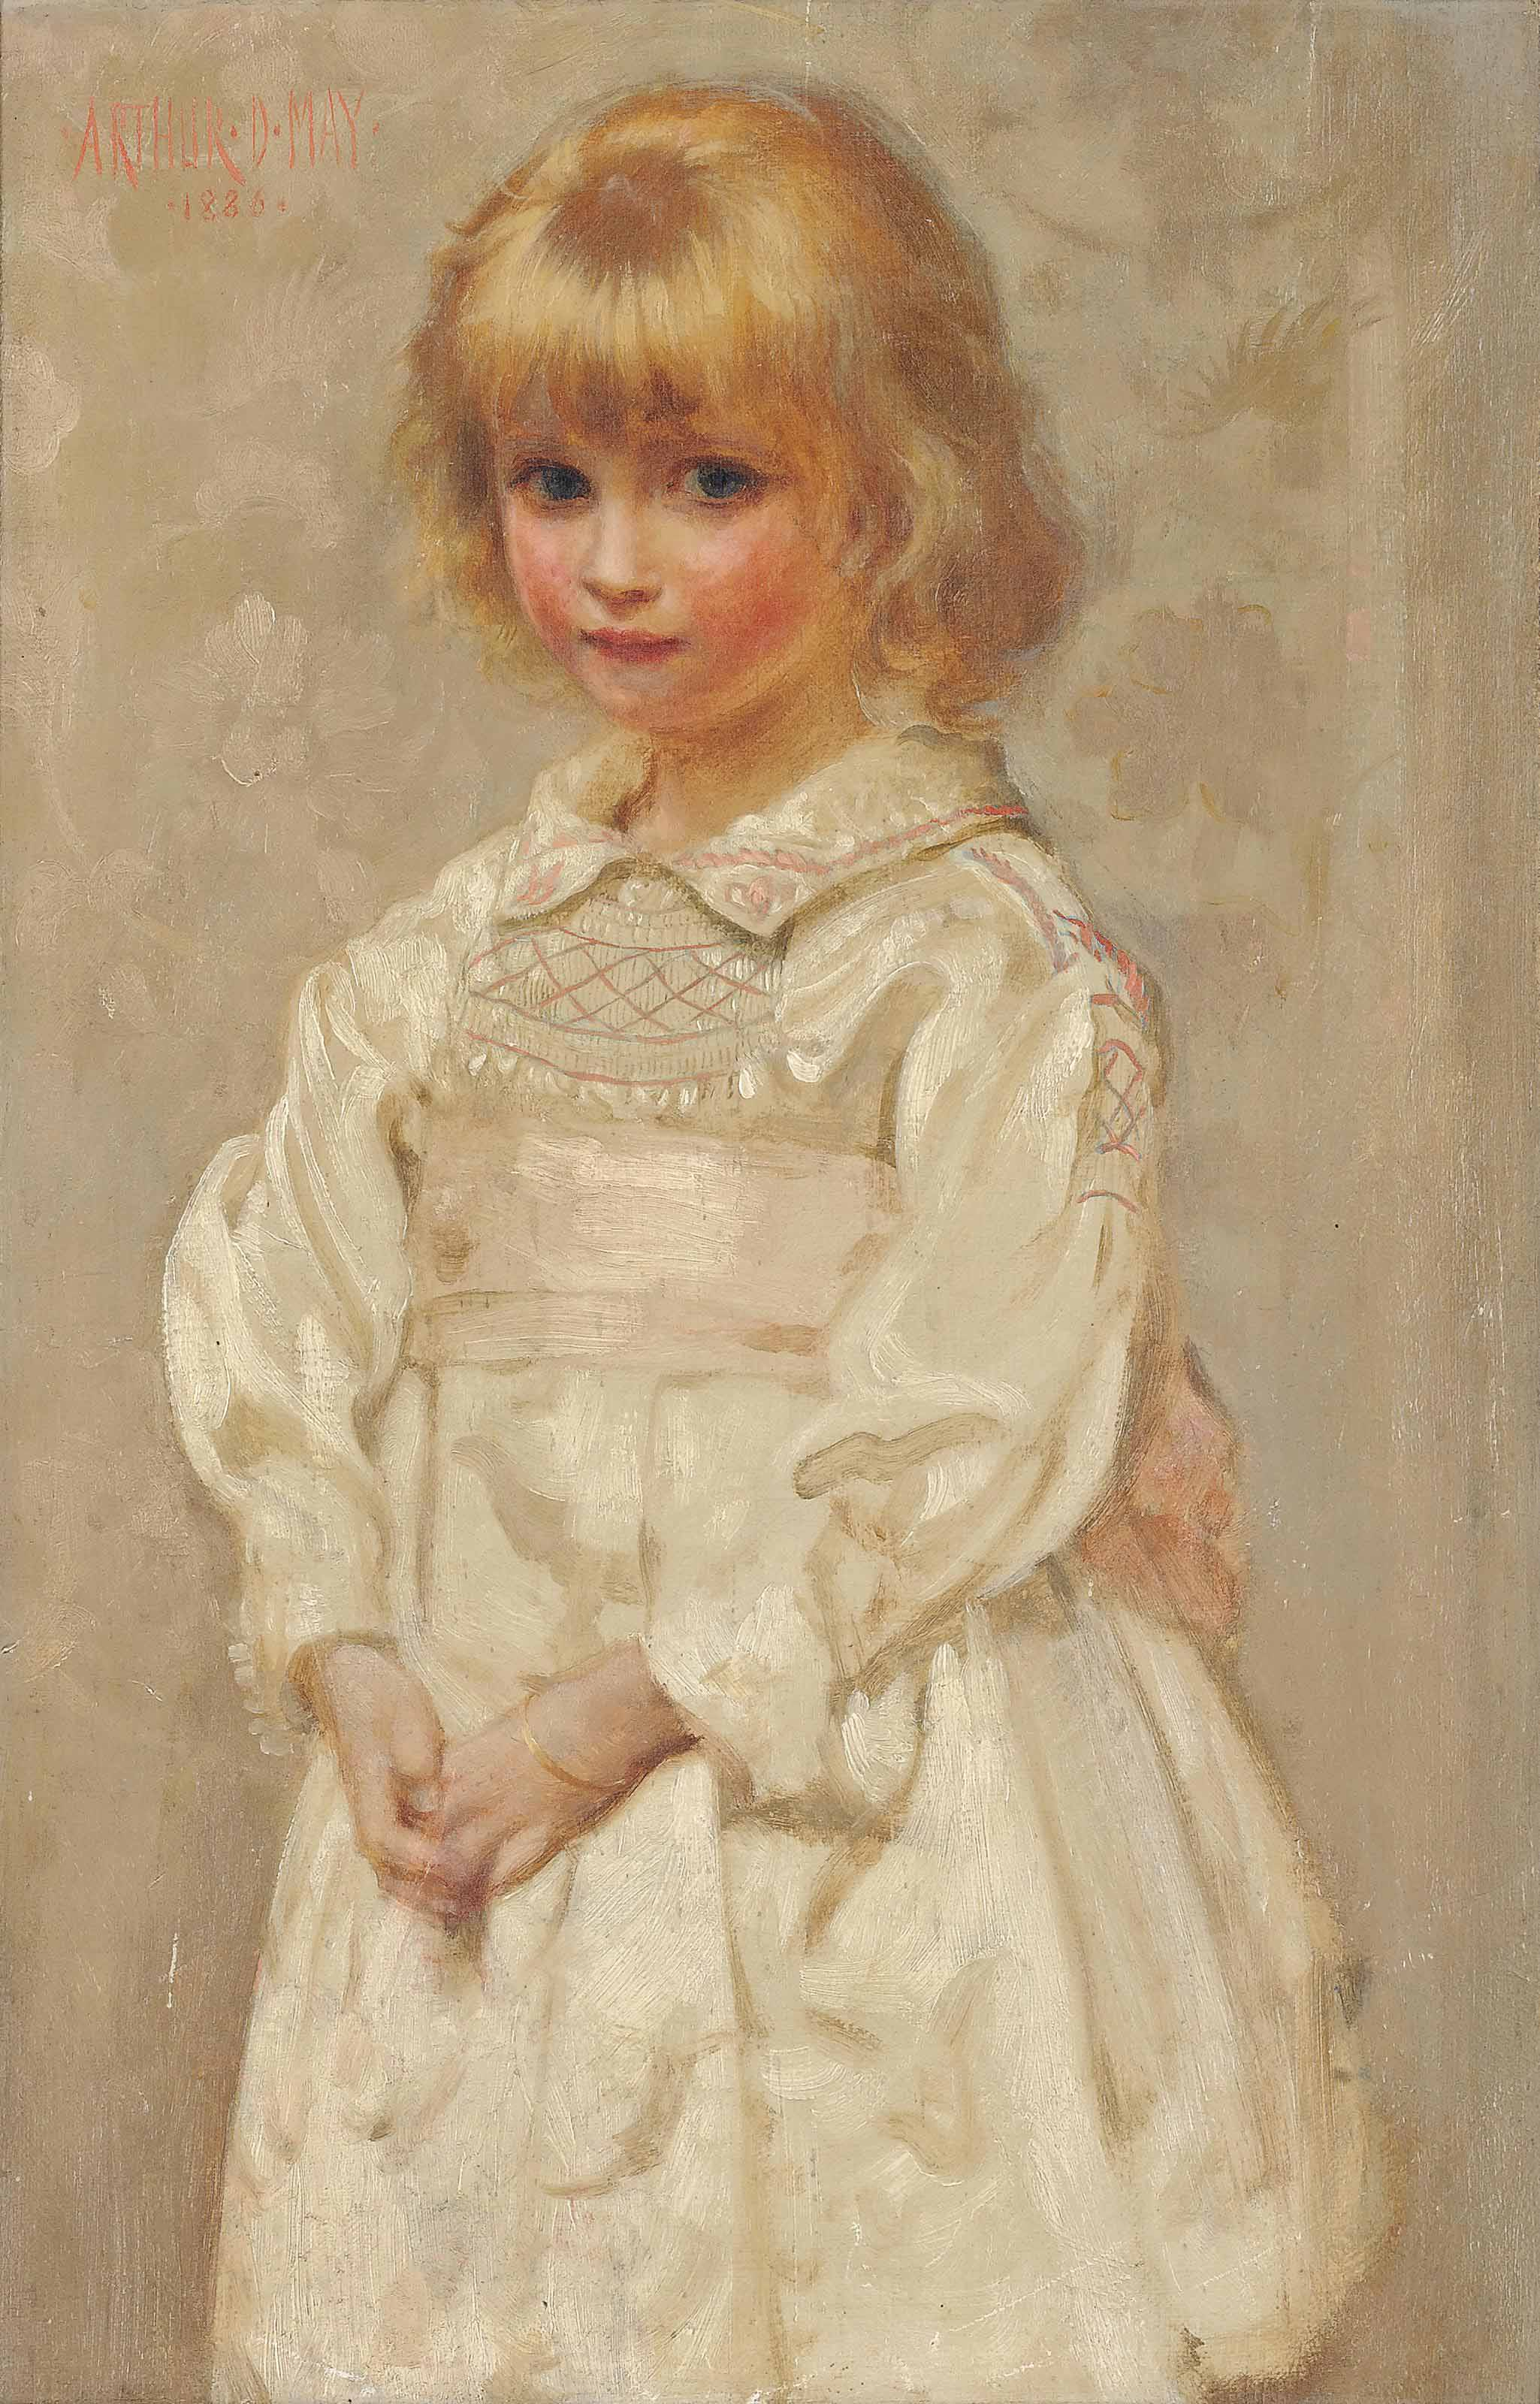 Portrait of a young girl in a pink and white smock dress